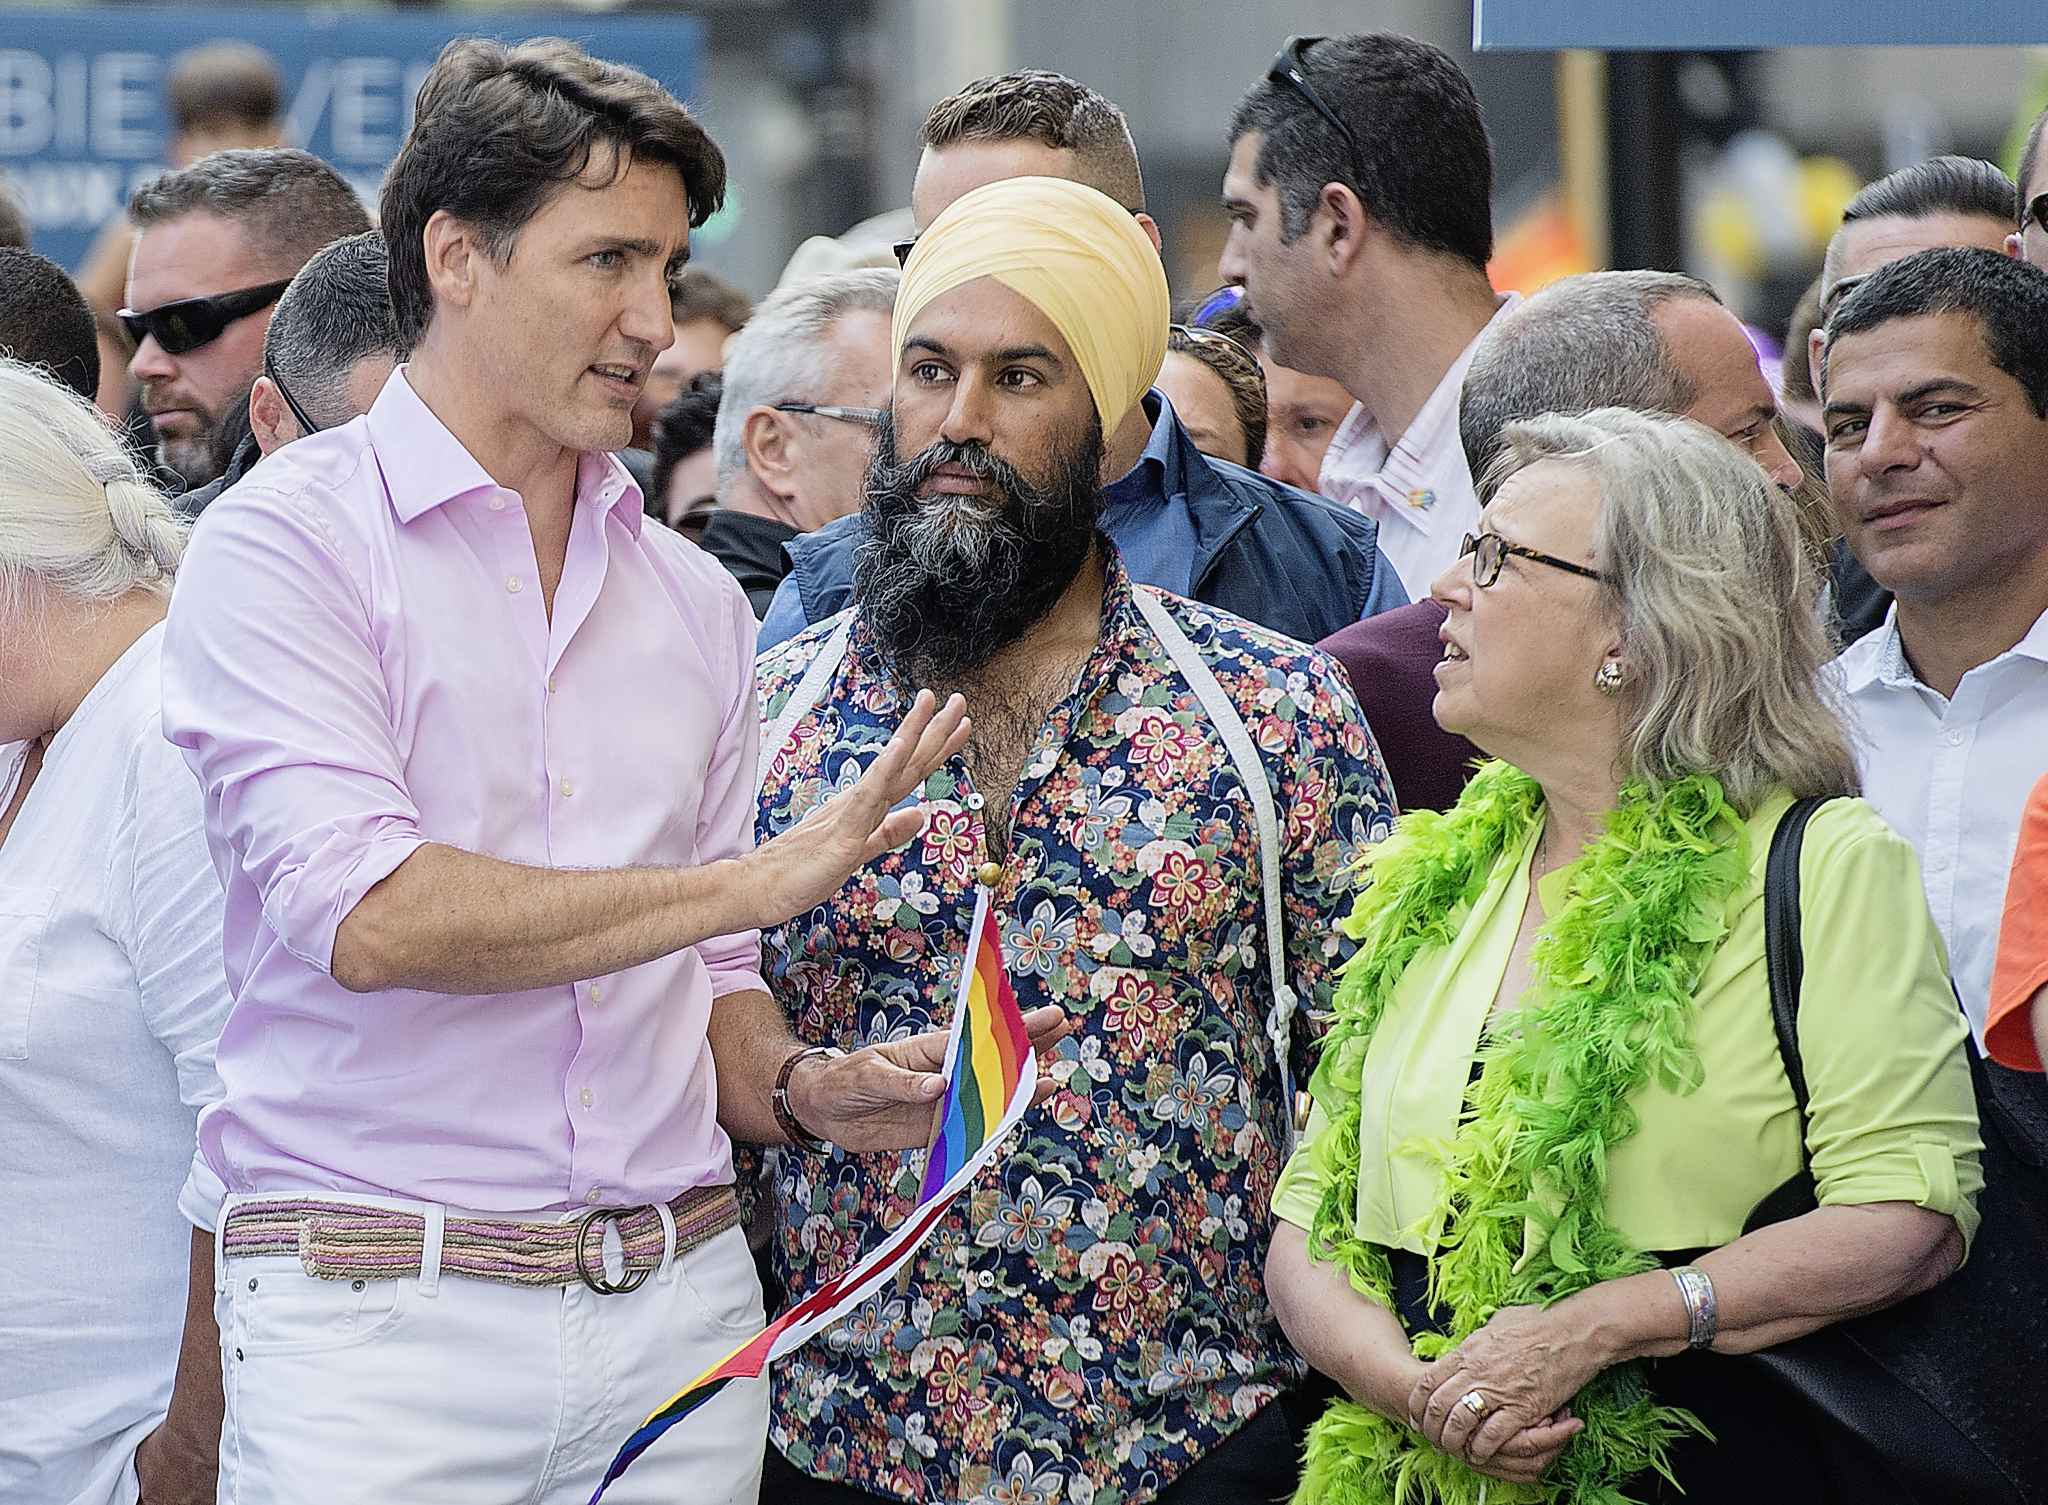 Prime Minister Justin Trudeau (left) attends the annual pride parade with NDP leader Jagmeet Singh and Green Party leader Elizabeth May in Montreal in August. (Graham Hughes / The Canadian Press files)